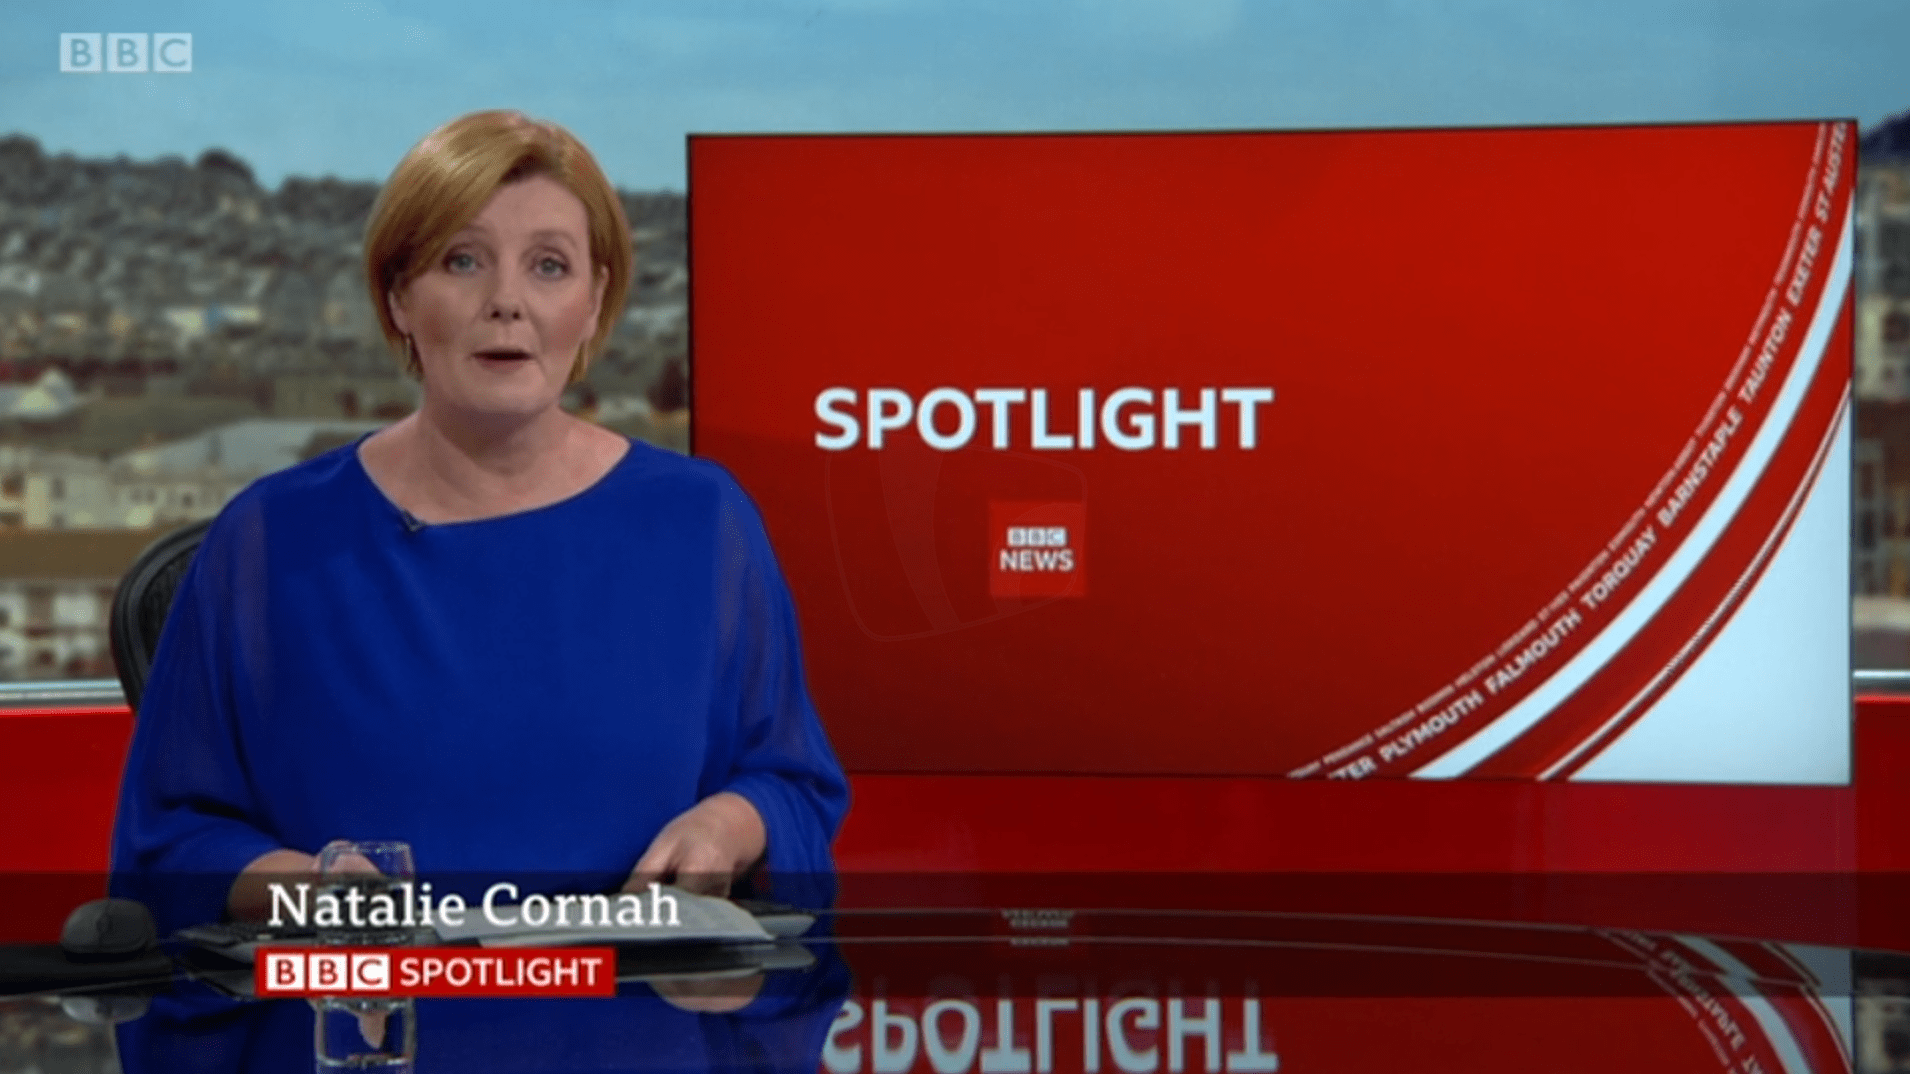 PICTURED: BBC Spotlight studio presentation and lower-third. Presenter: Natalie Cornah